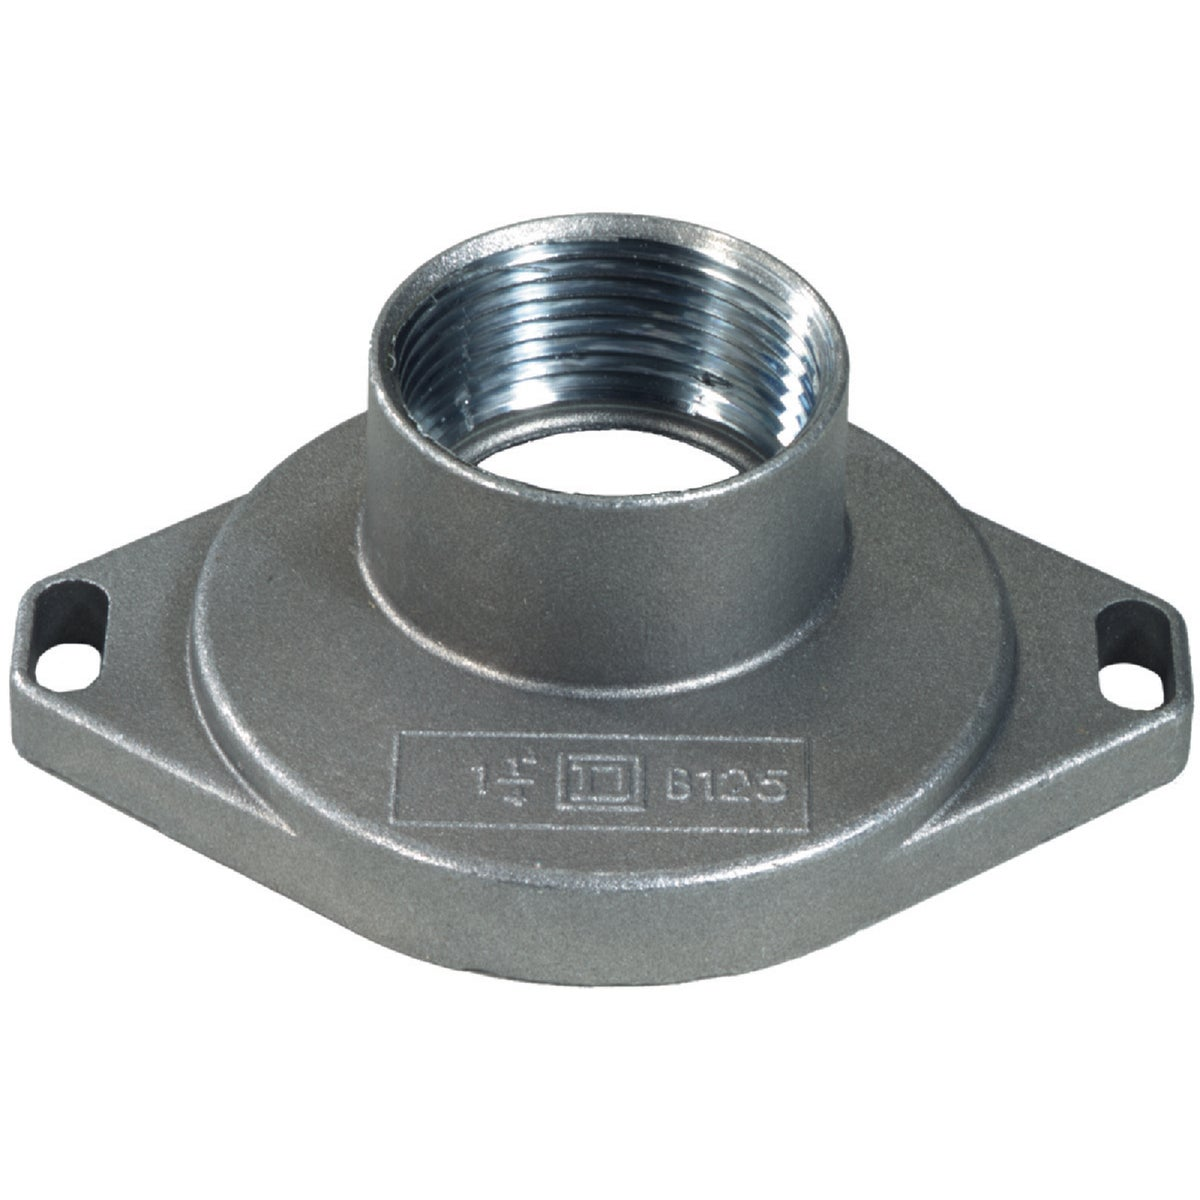 "1-1/4"" BOLT-ON HUB - B125 by Square D Co"